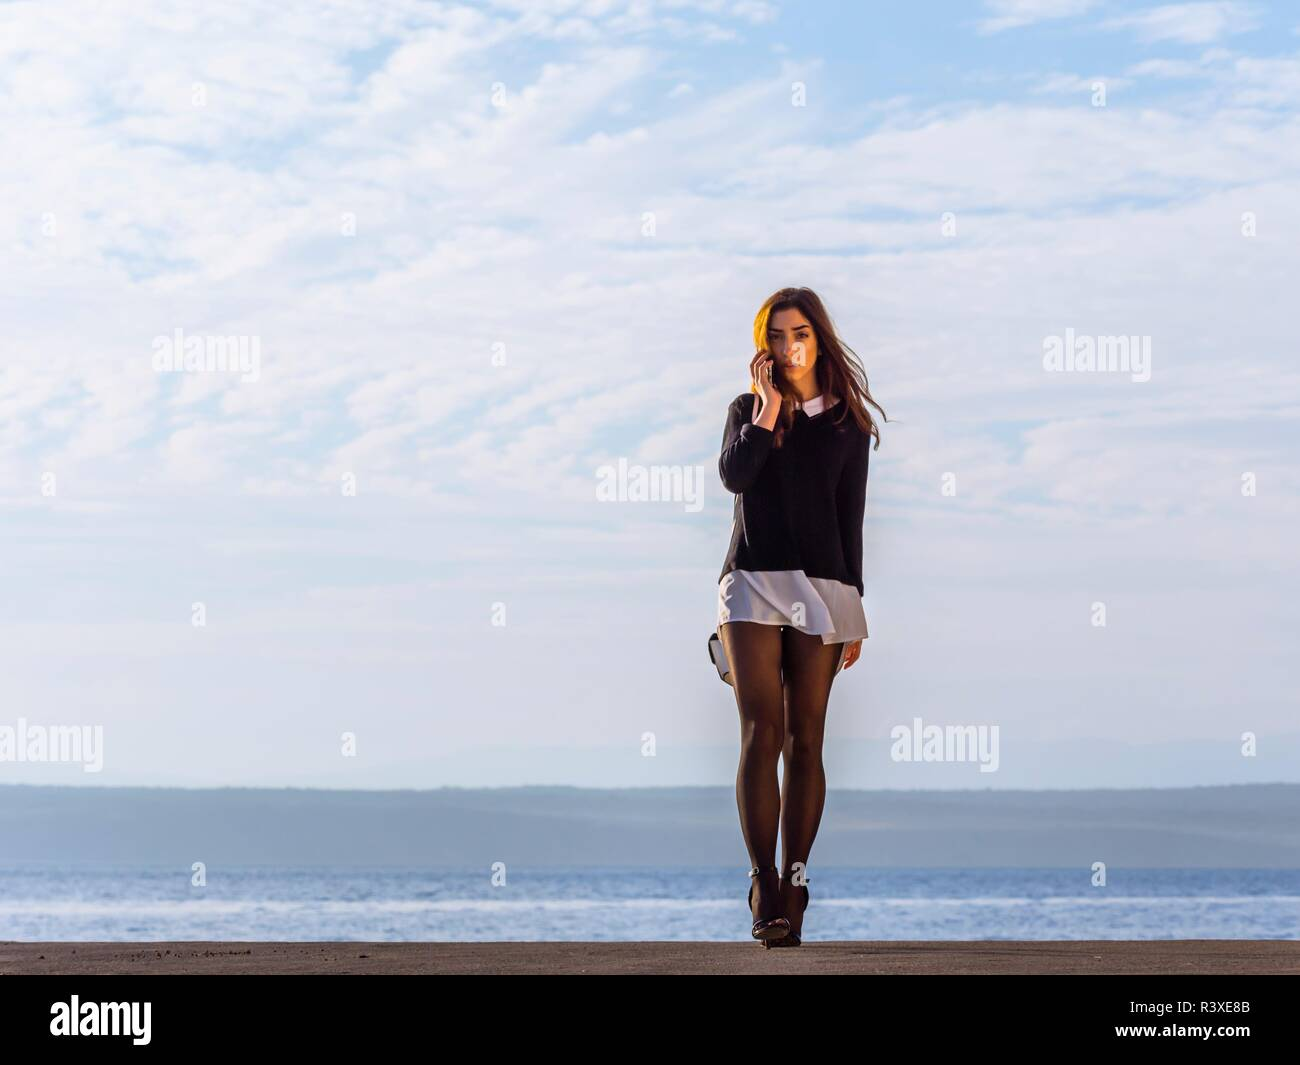 Attractive teen girl adolescent walking towards camera serious talking on mobile phone cellphone isolated against sunlit sky Black tights Stock Photo